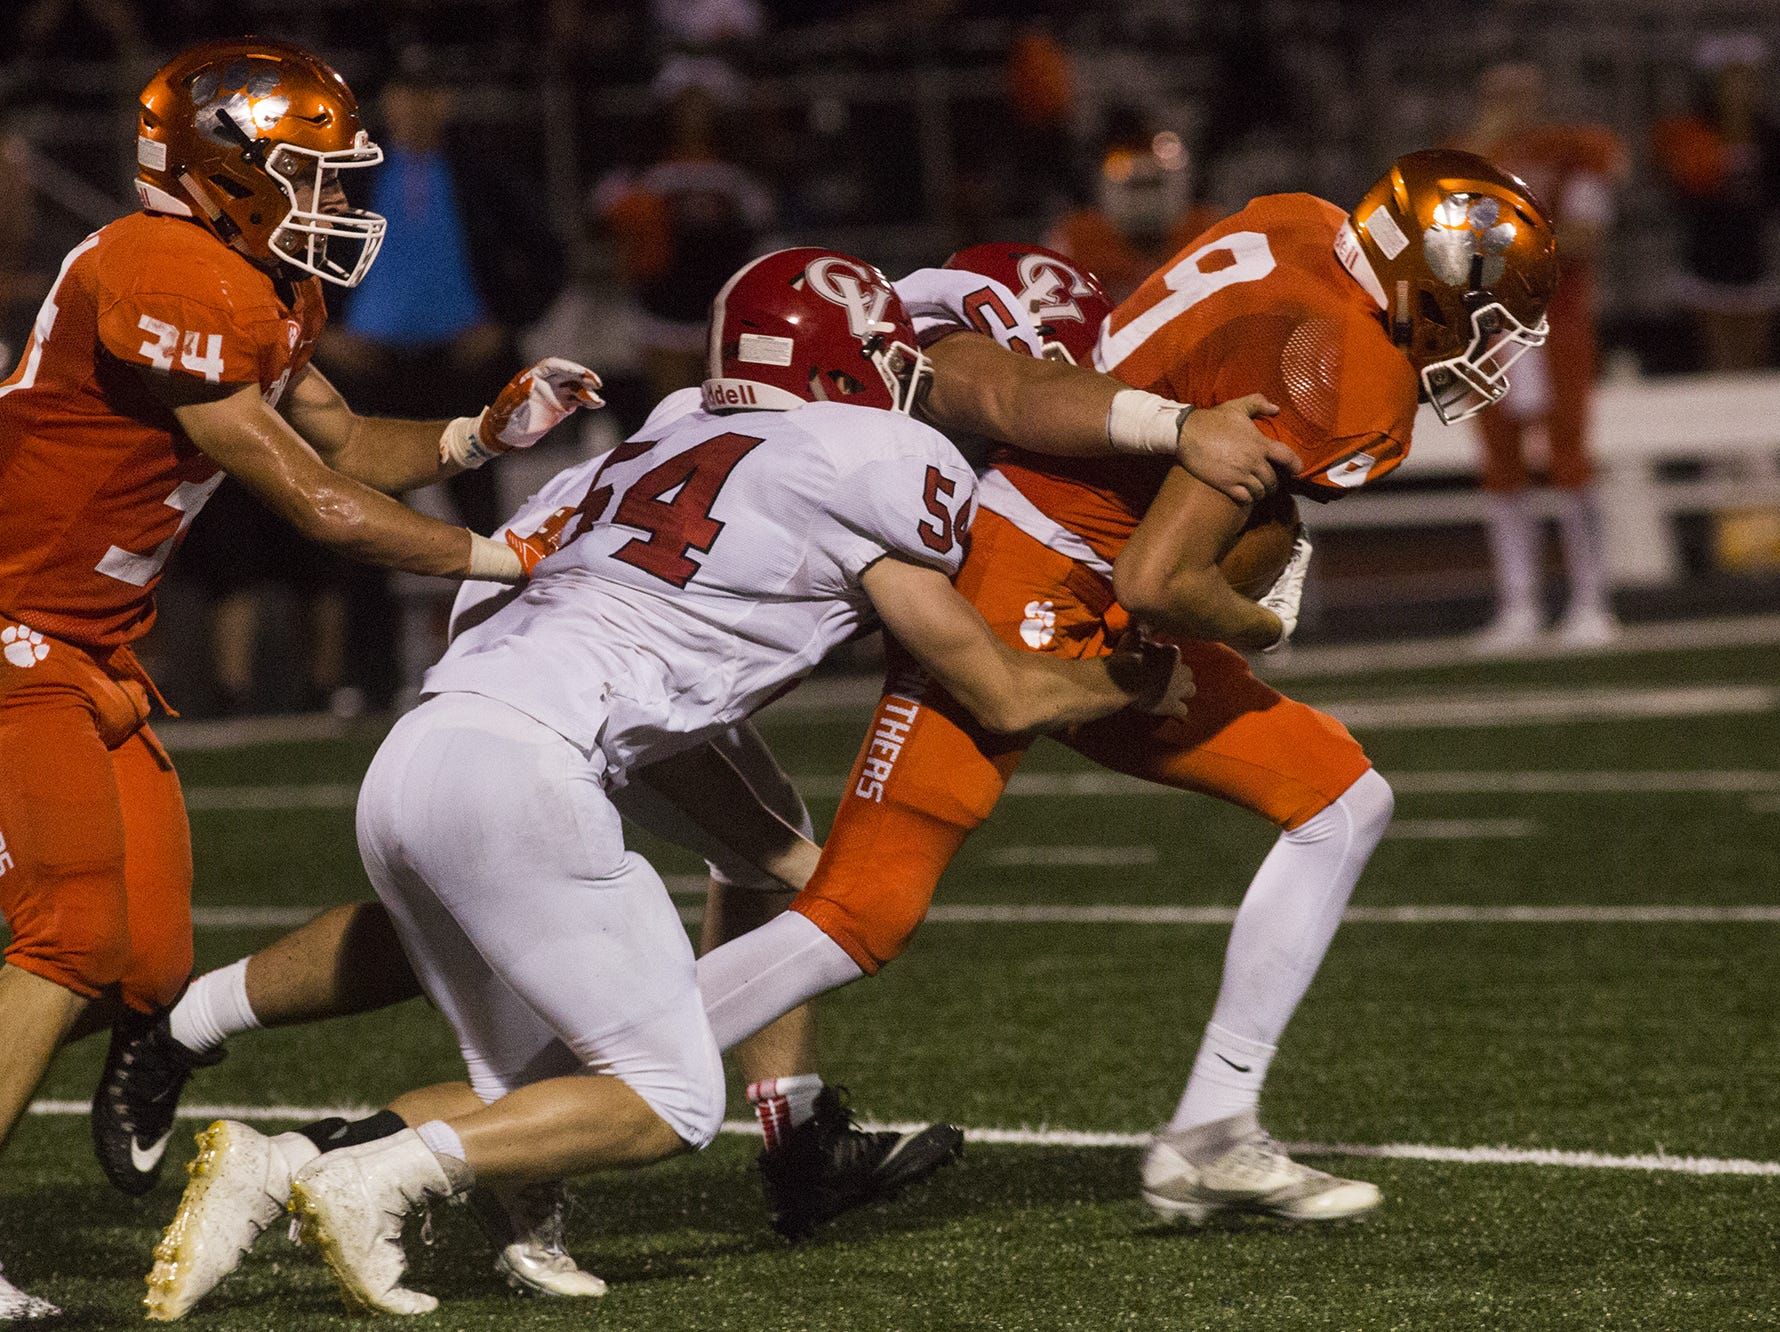 Central York's Reid Hershner is tackled after recovering a Cumberland Valley fumble. Central York defeats Cumberland Valley 31-14 in football at Central York High School in Springettsbury Township, Friday, August 31, 2018.